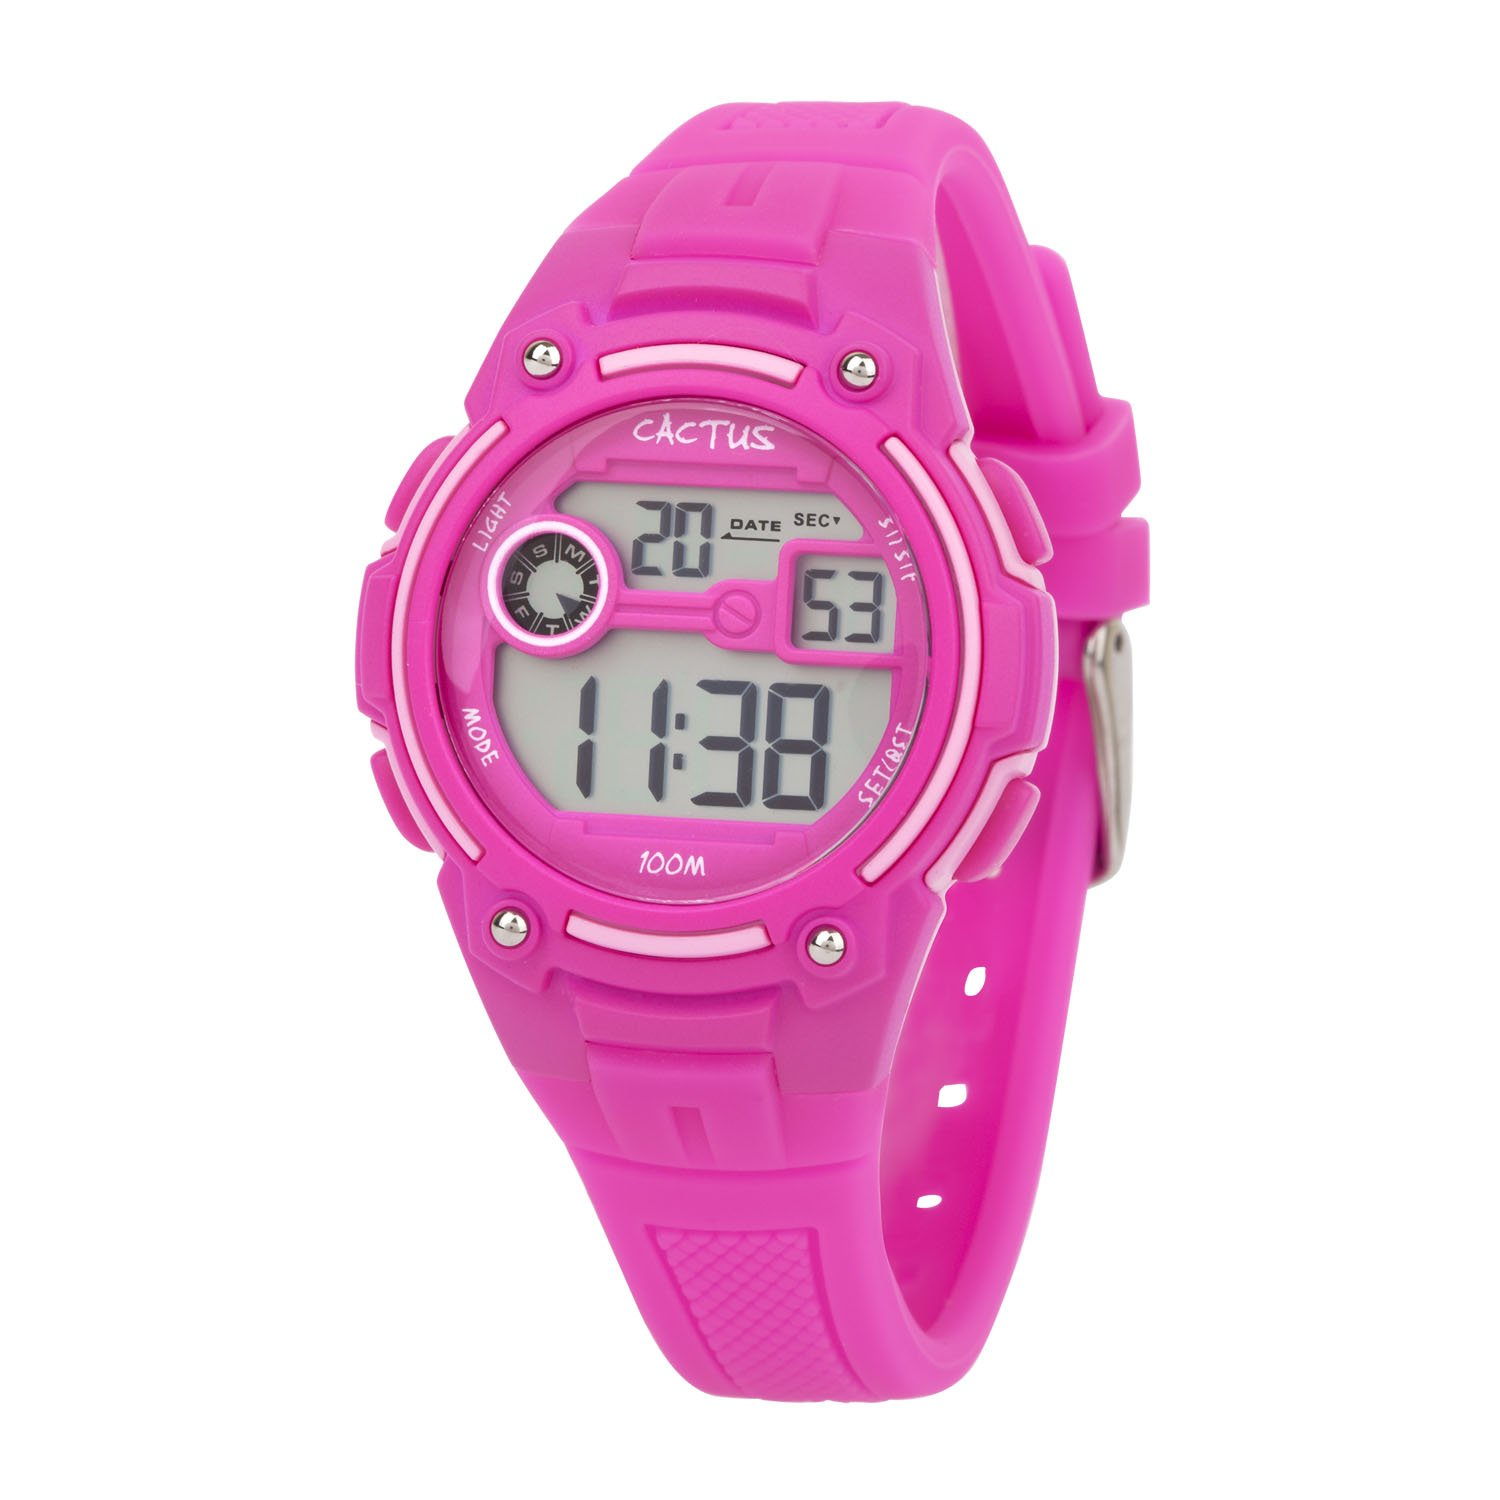 Cactus Rambler Digital LCD Watch Hot Pink